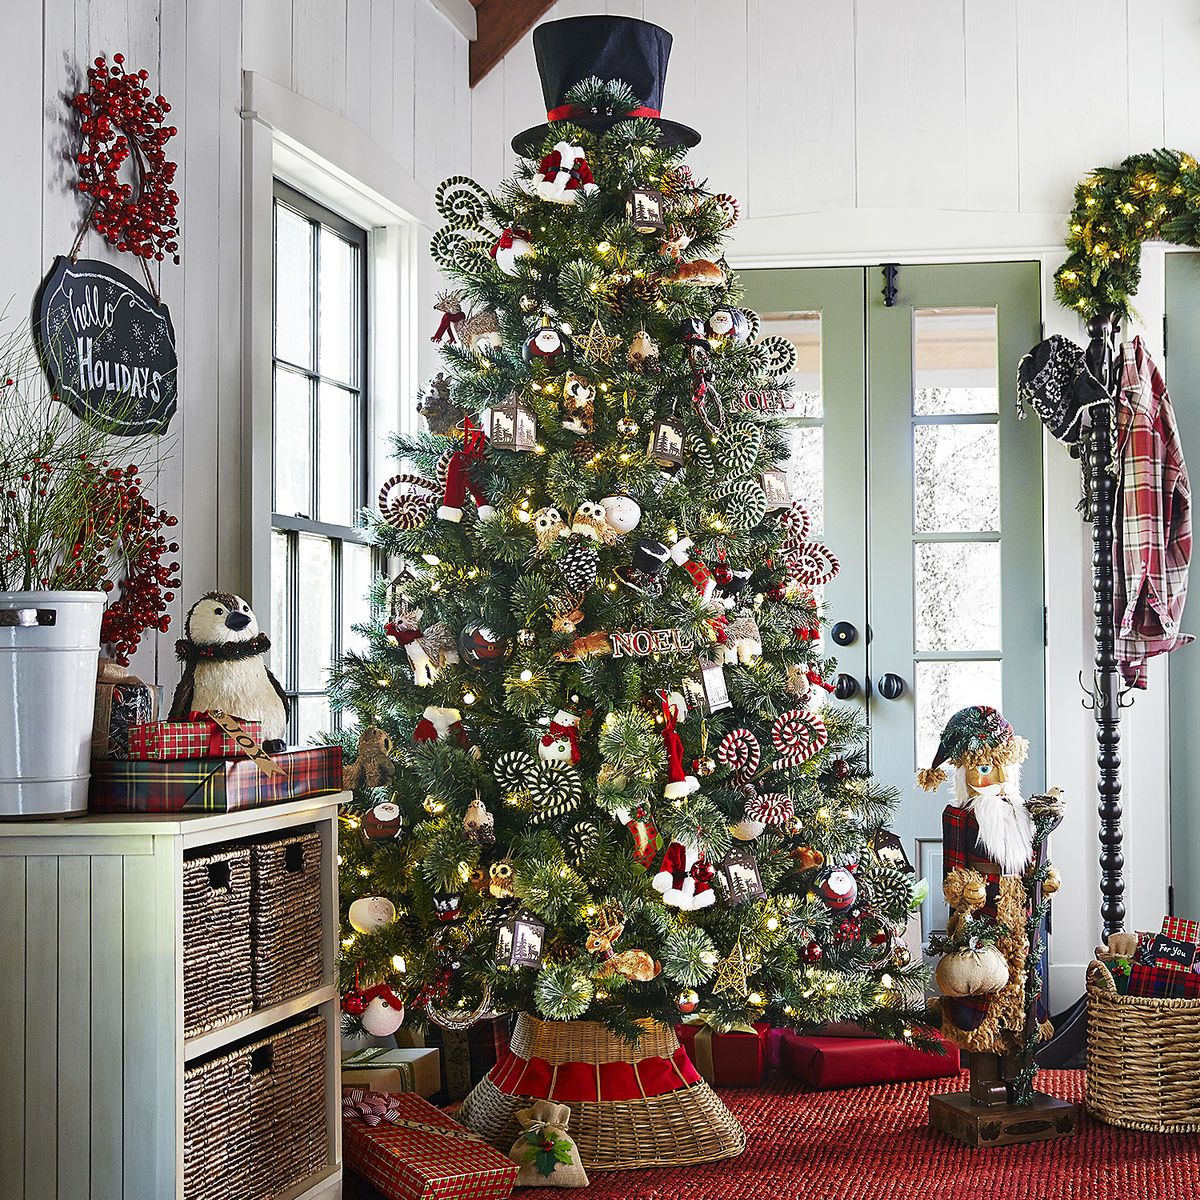 Pier One Christmas.Plaid Tidings Christmas Tree 9 Pier 1 Imports Holiday